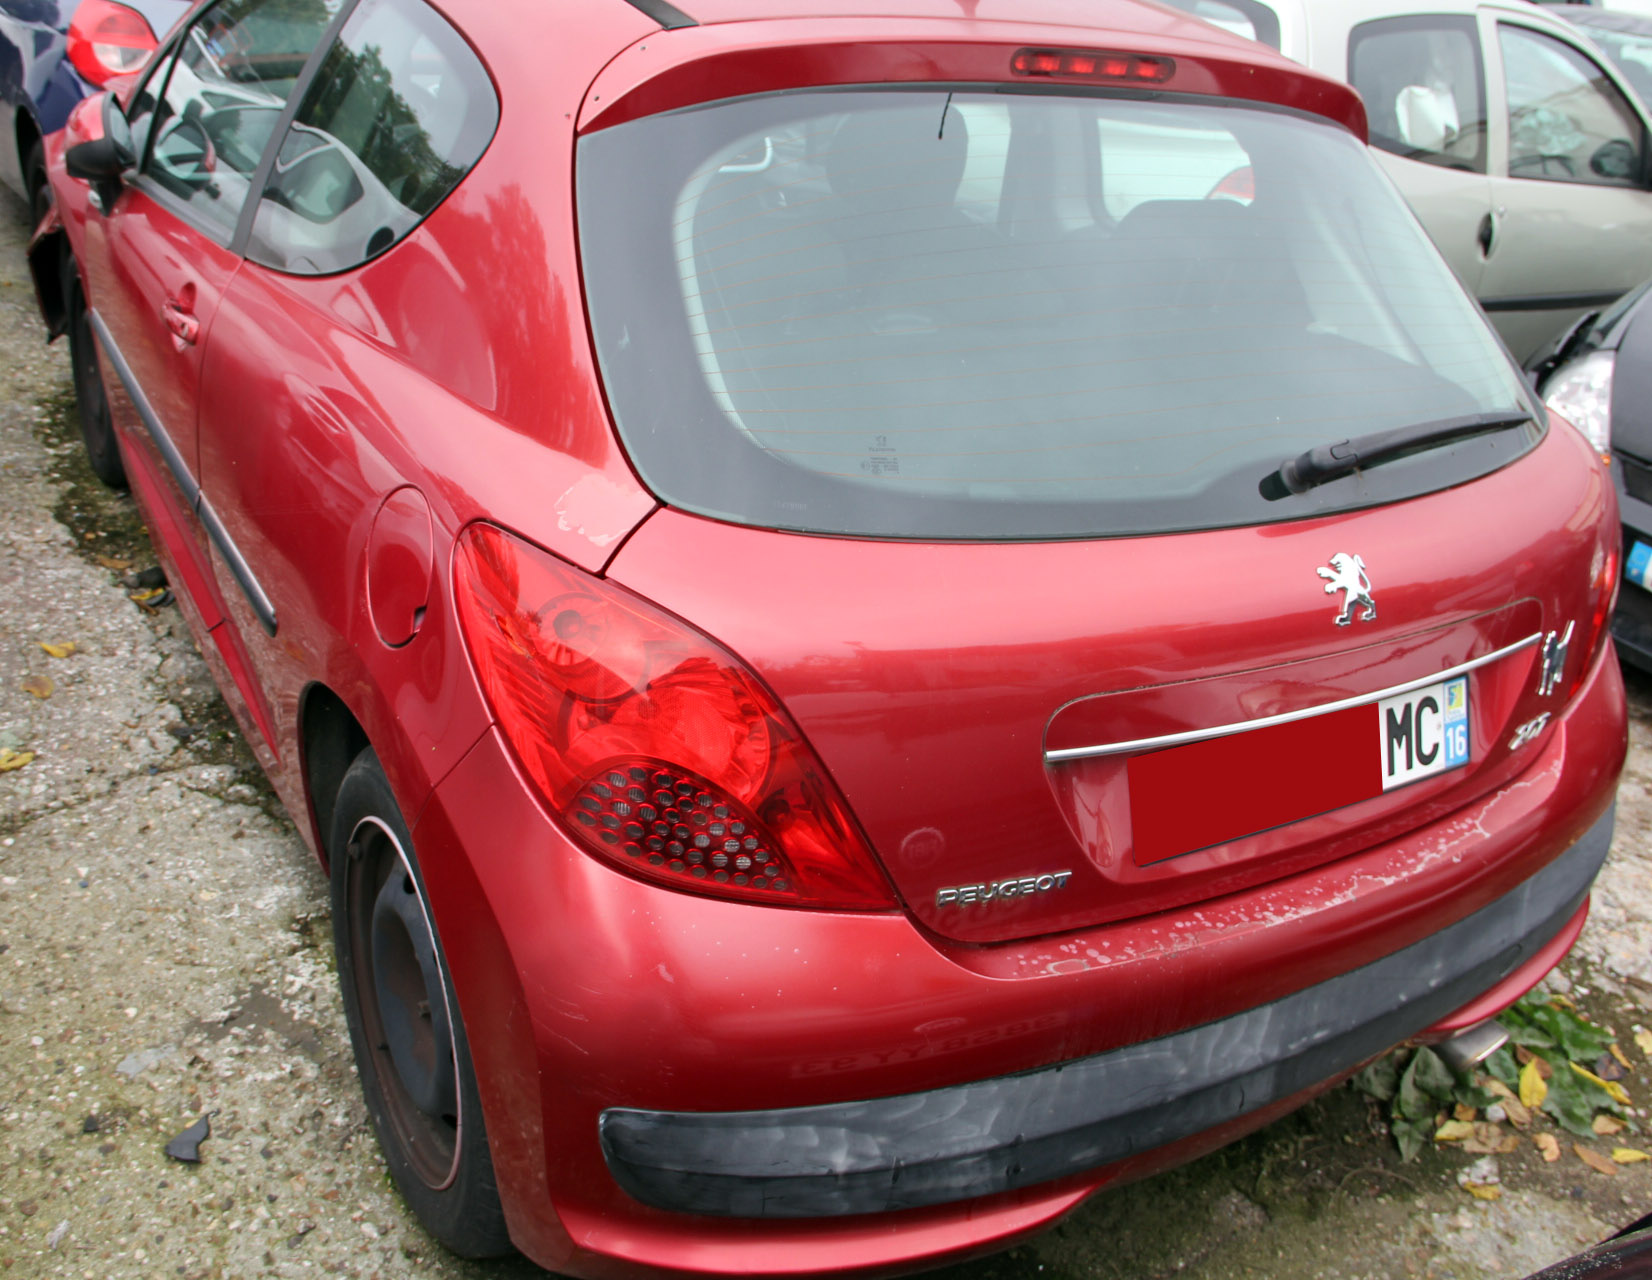 Peugeot 207 - 90 sport accidentée